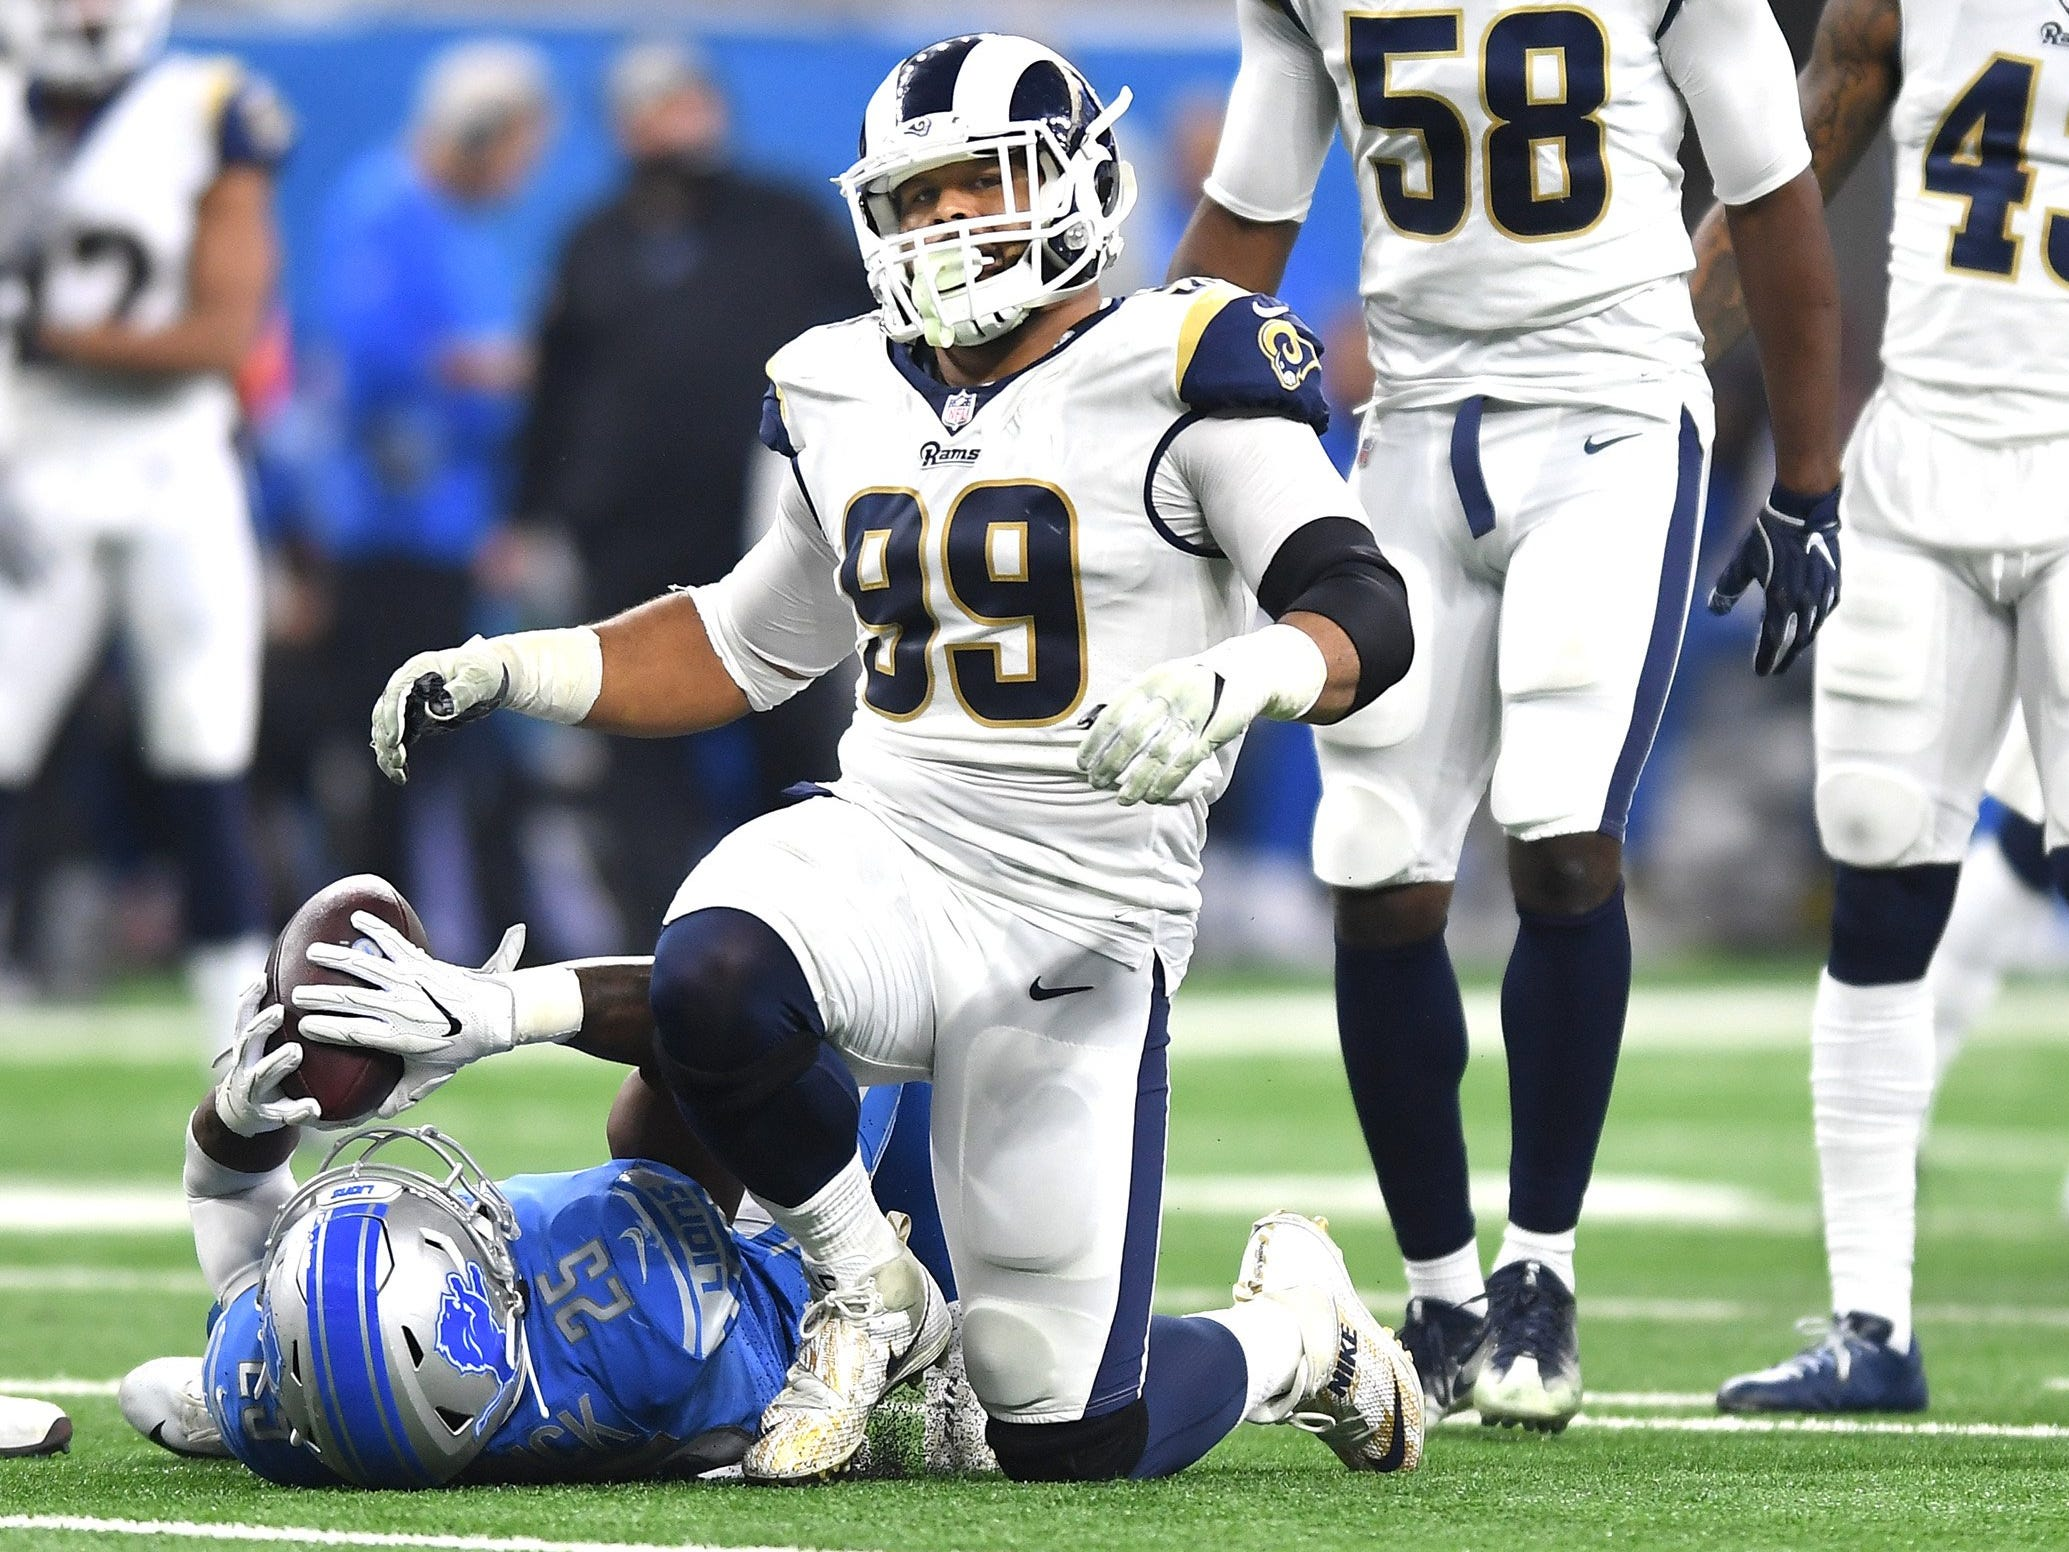 Rams defensive lineman Aaron Donald Lions running back Theo Riddick for a short gain in the first quarter of the Lions' 30-16 loss on Sunday, Dec. 2, 2018, at Ford Field.